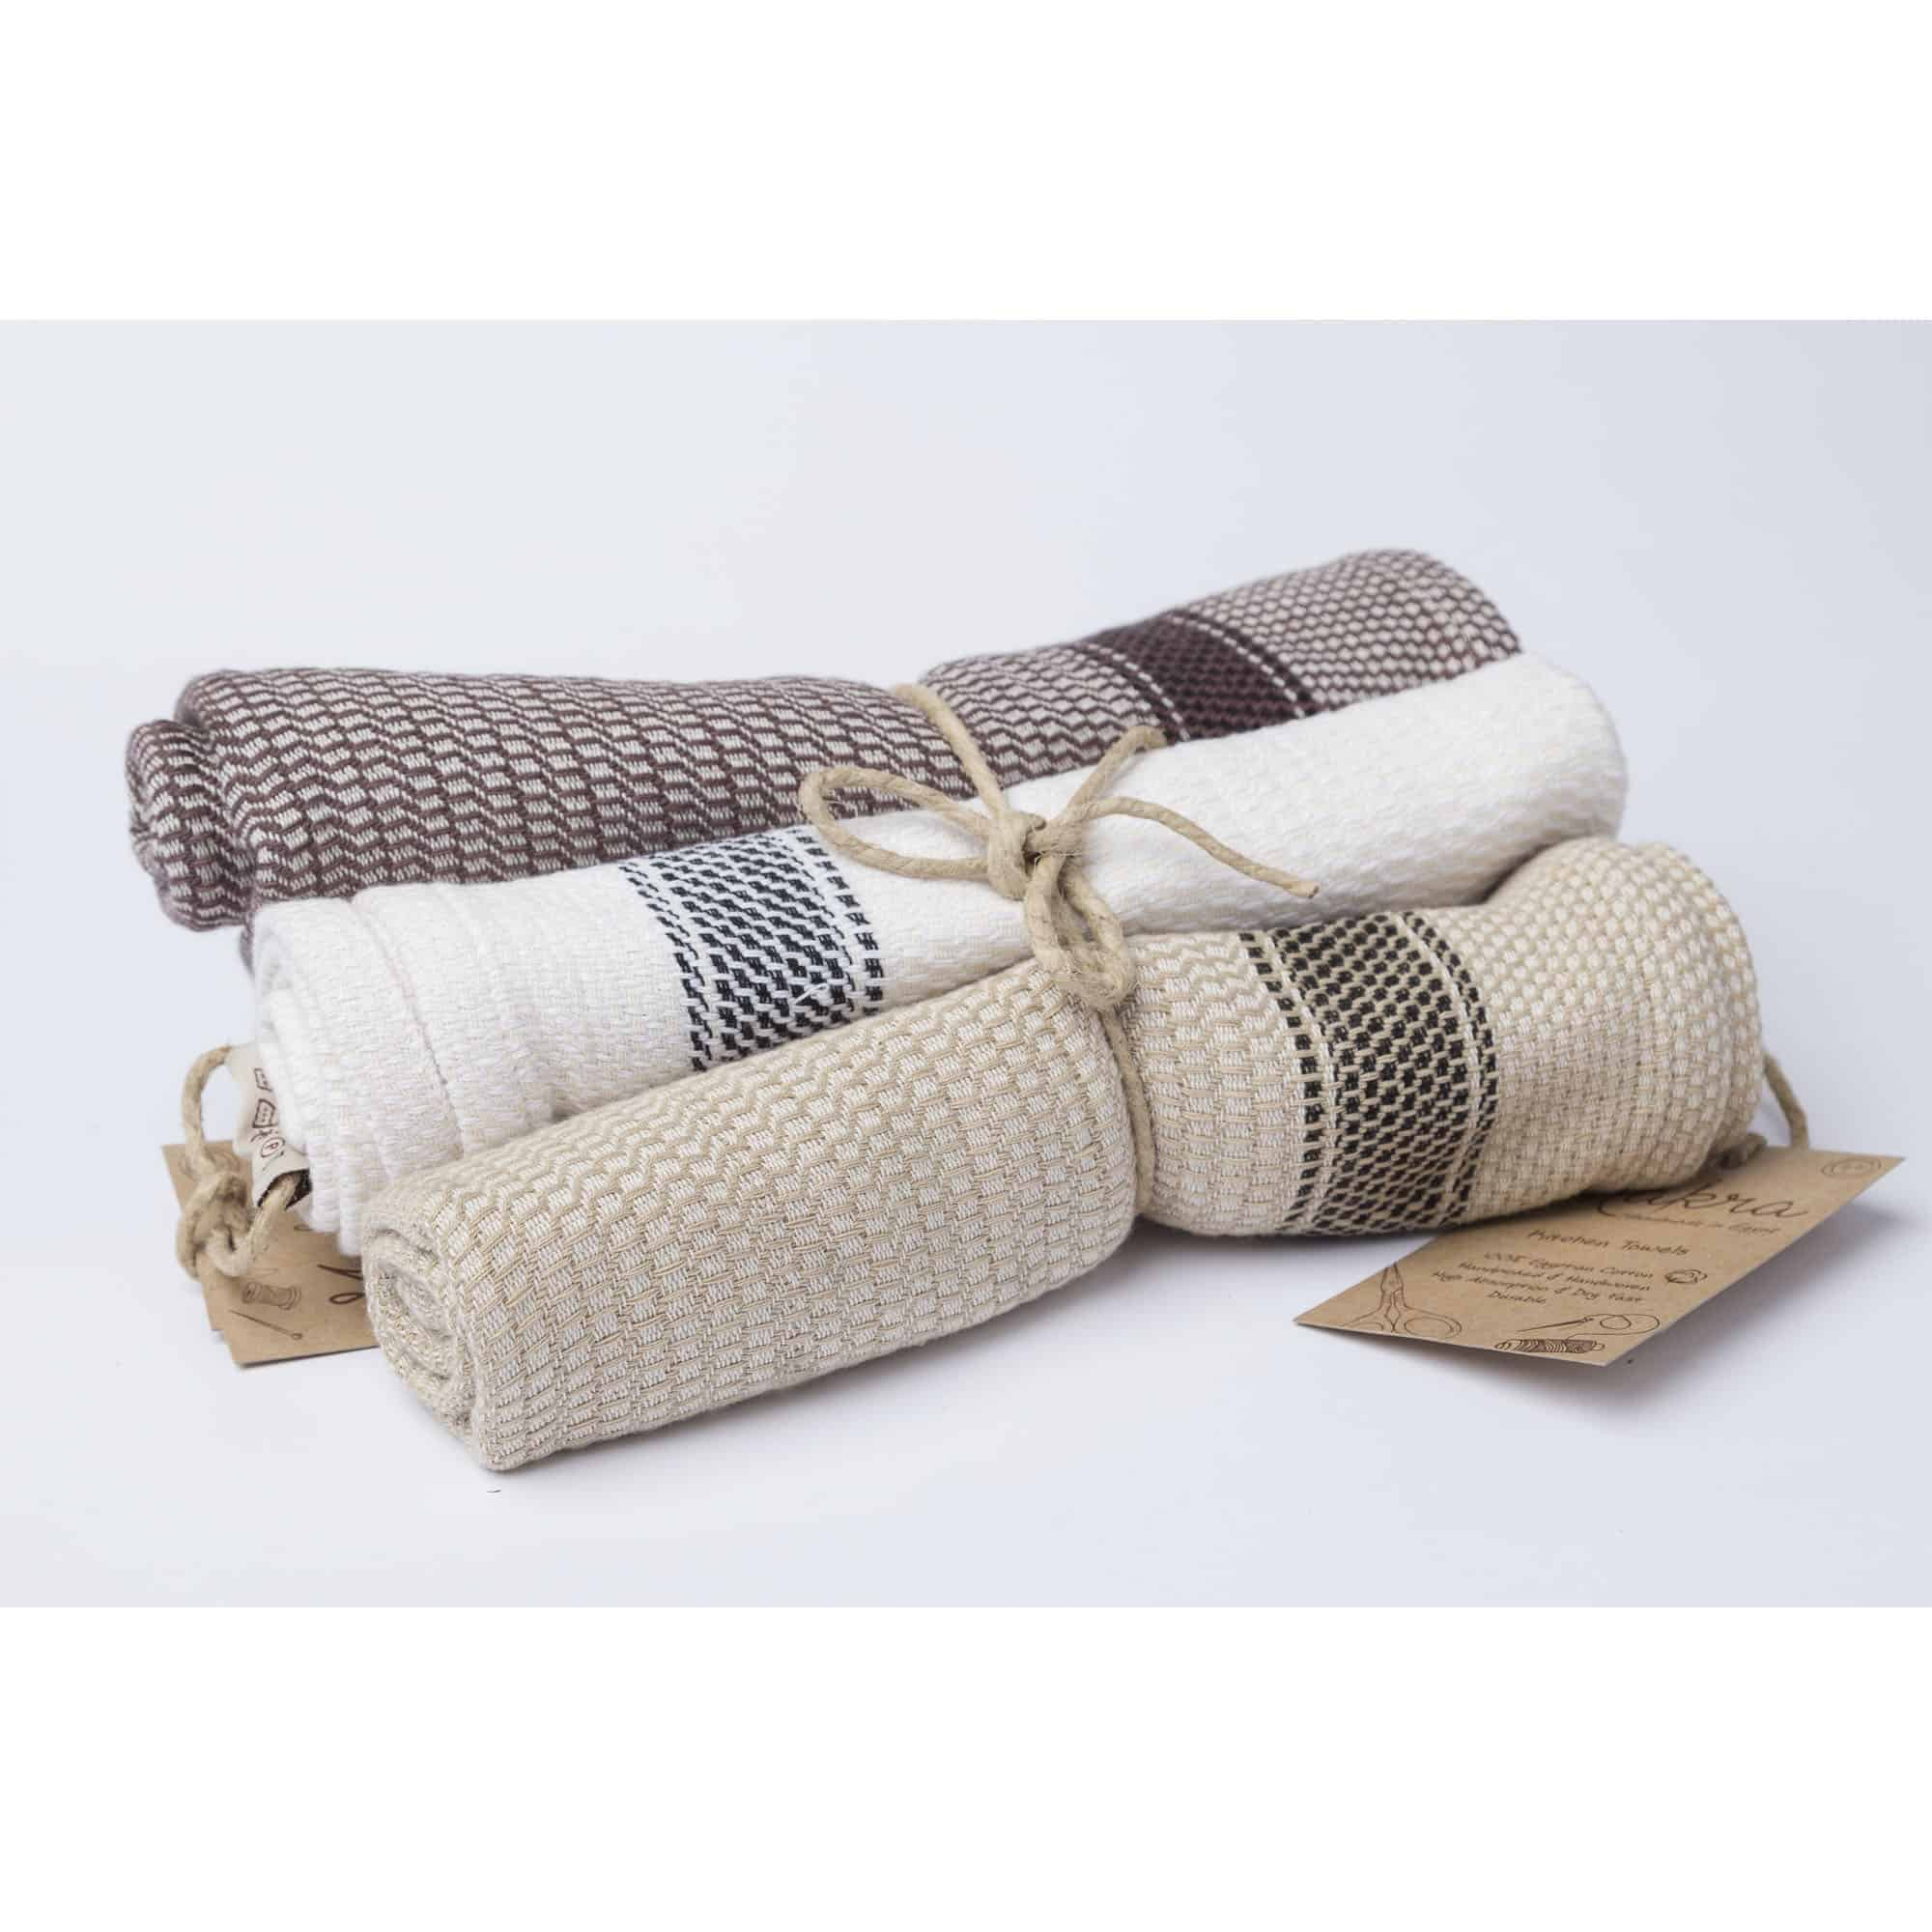 Tea and kitchen towel set of 3 handwoven classic egyptian cotton